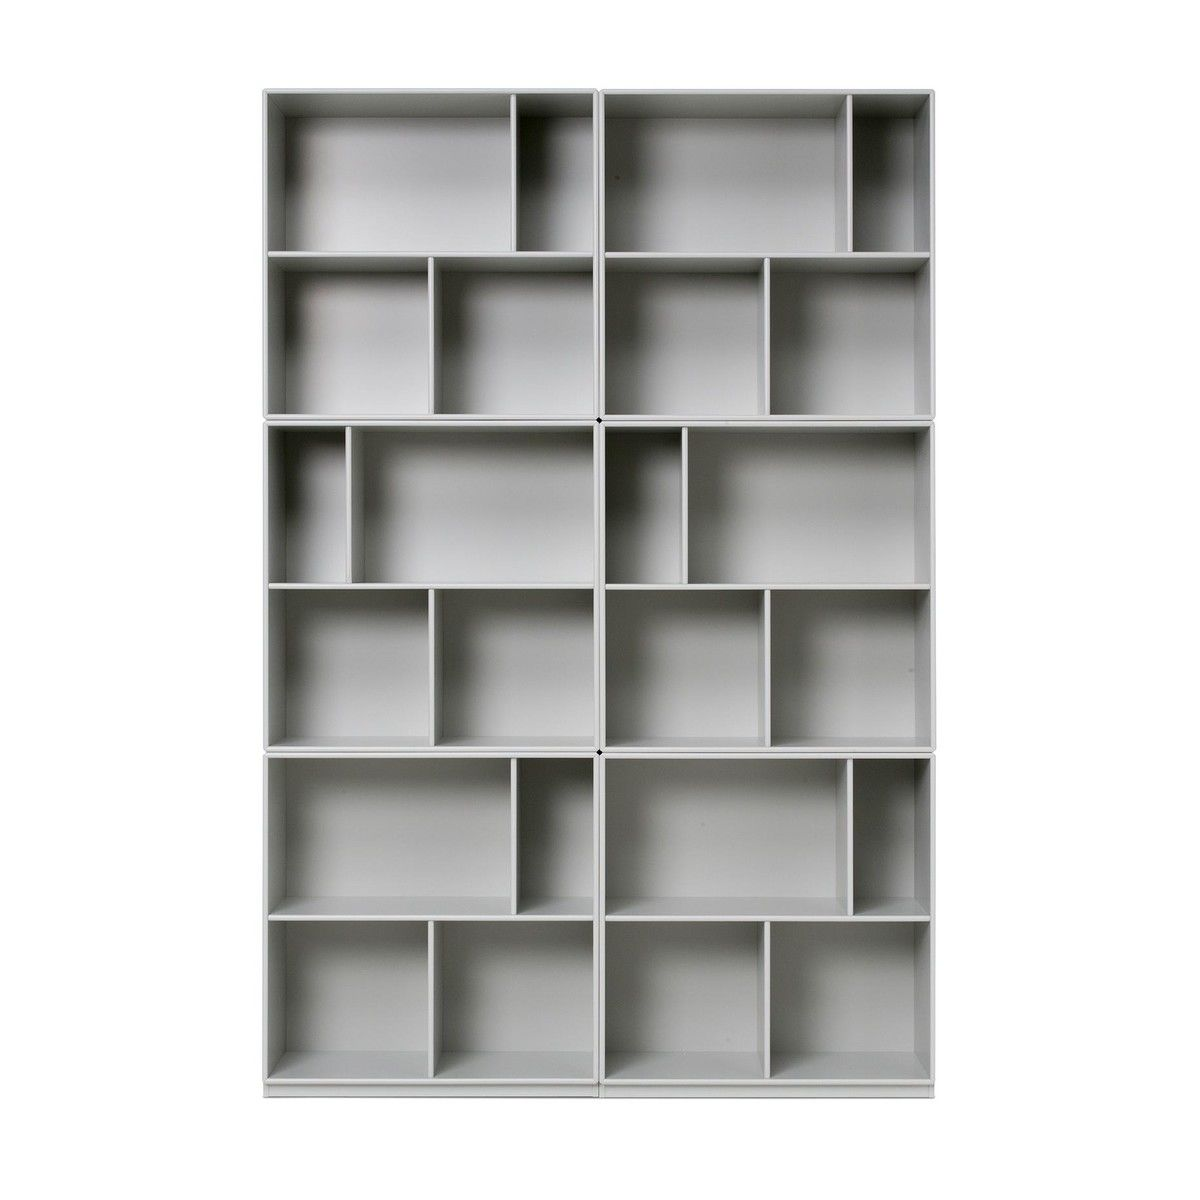 Read Book Shelf read book shelf 211.8x139.2cm | montana | ambientedirect